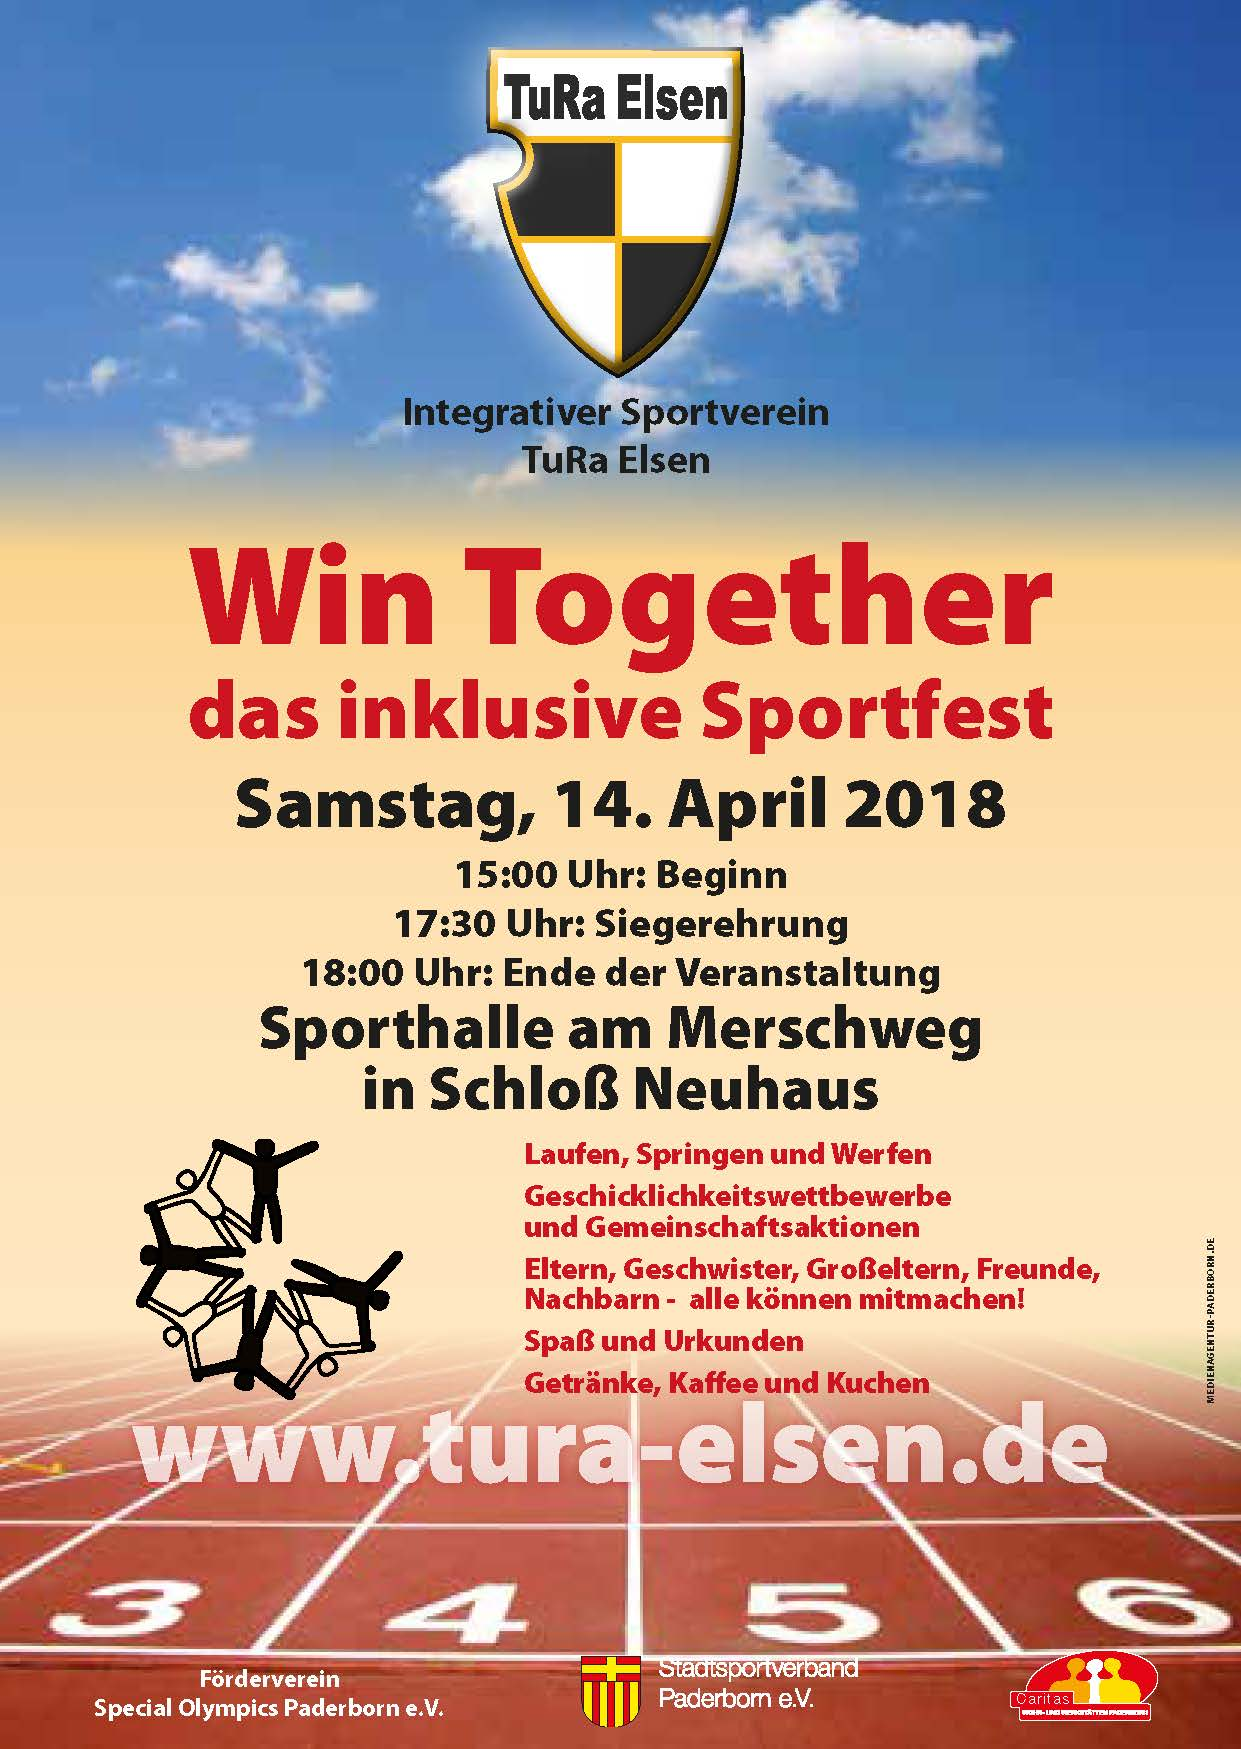 WinTogether 2018